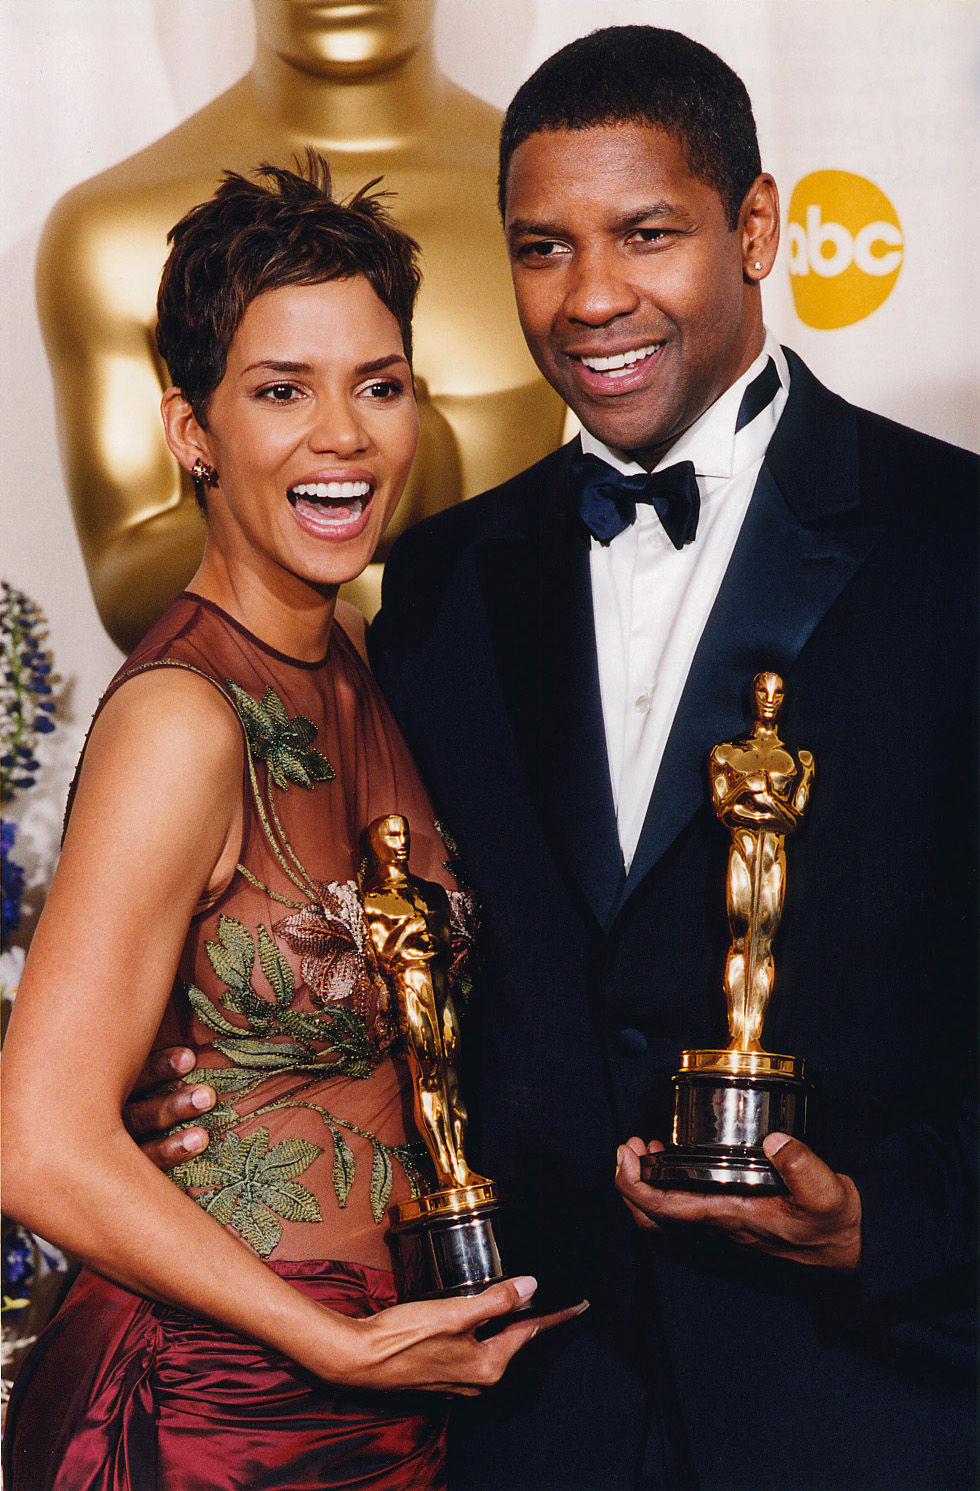 Berry on Oscar night, photo via  Academy of the Motion Pictures